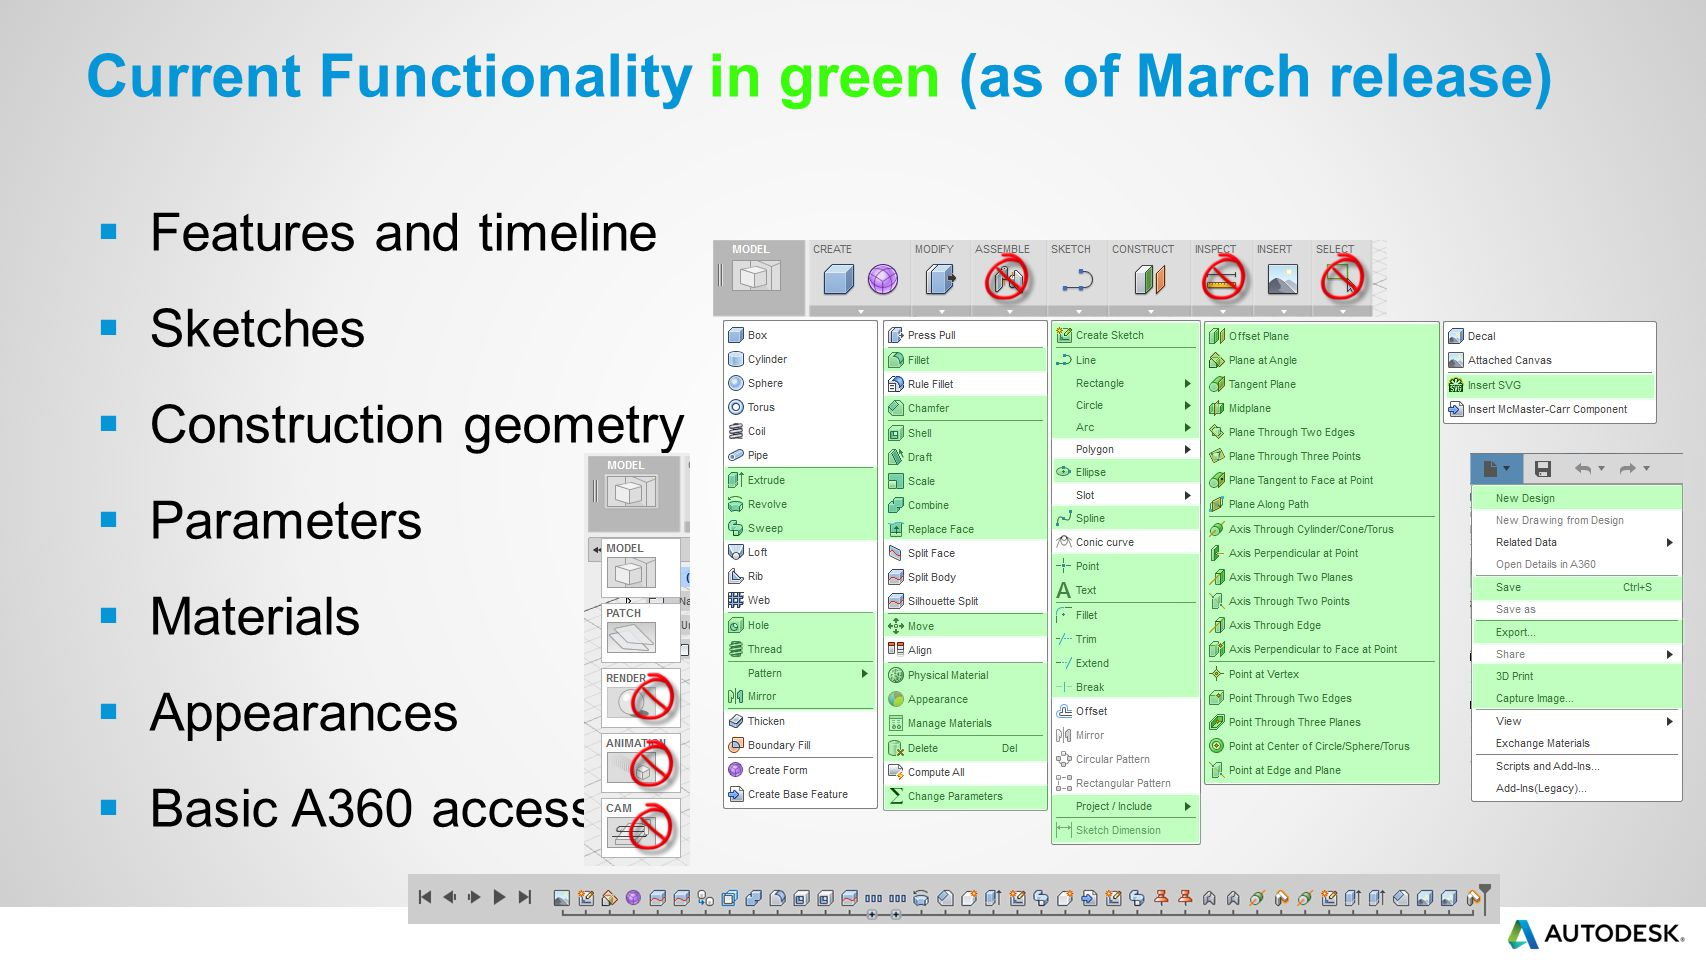 Current Functionality in green (as of March release)